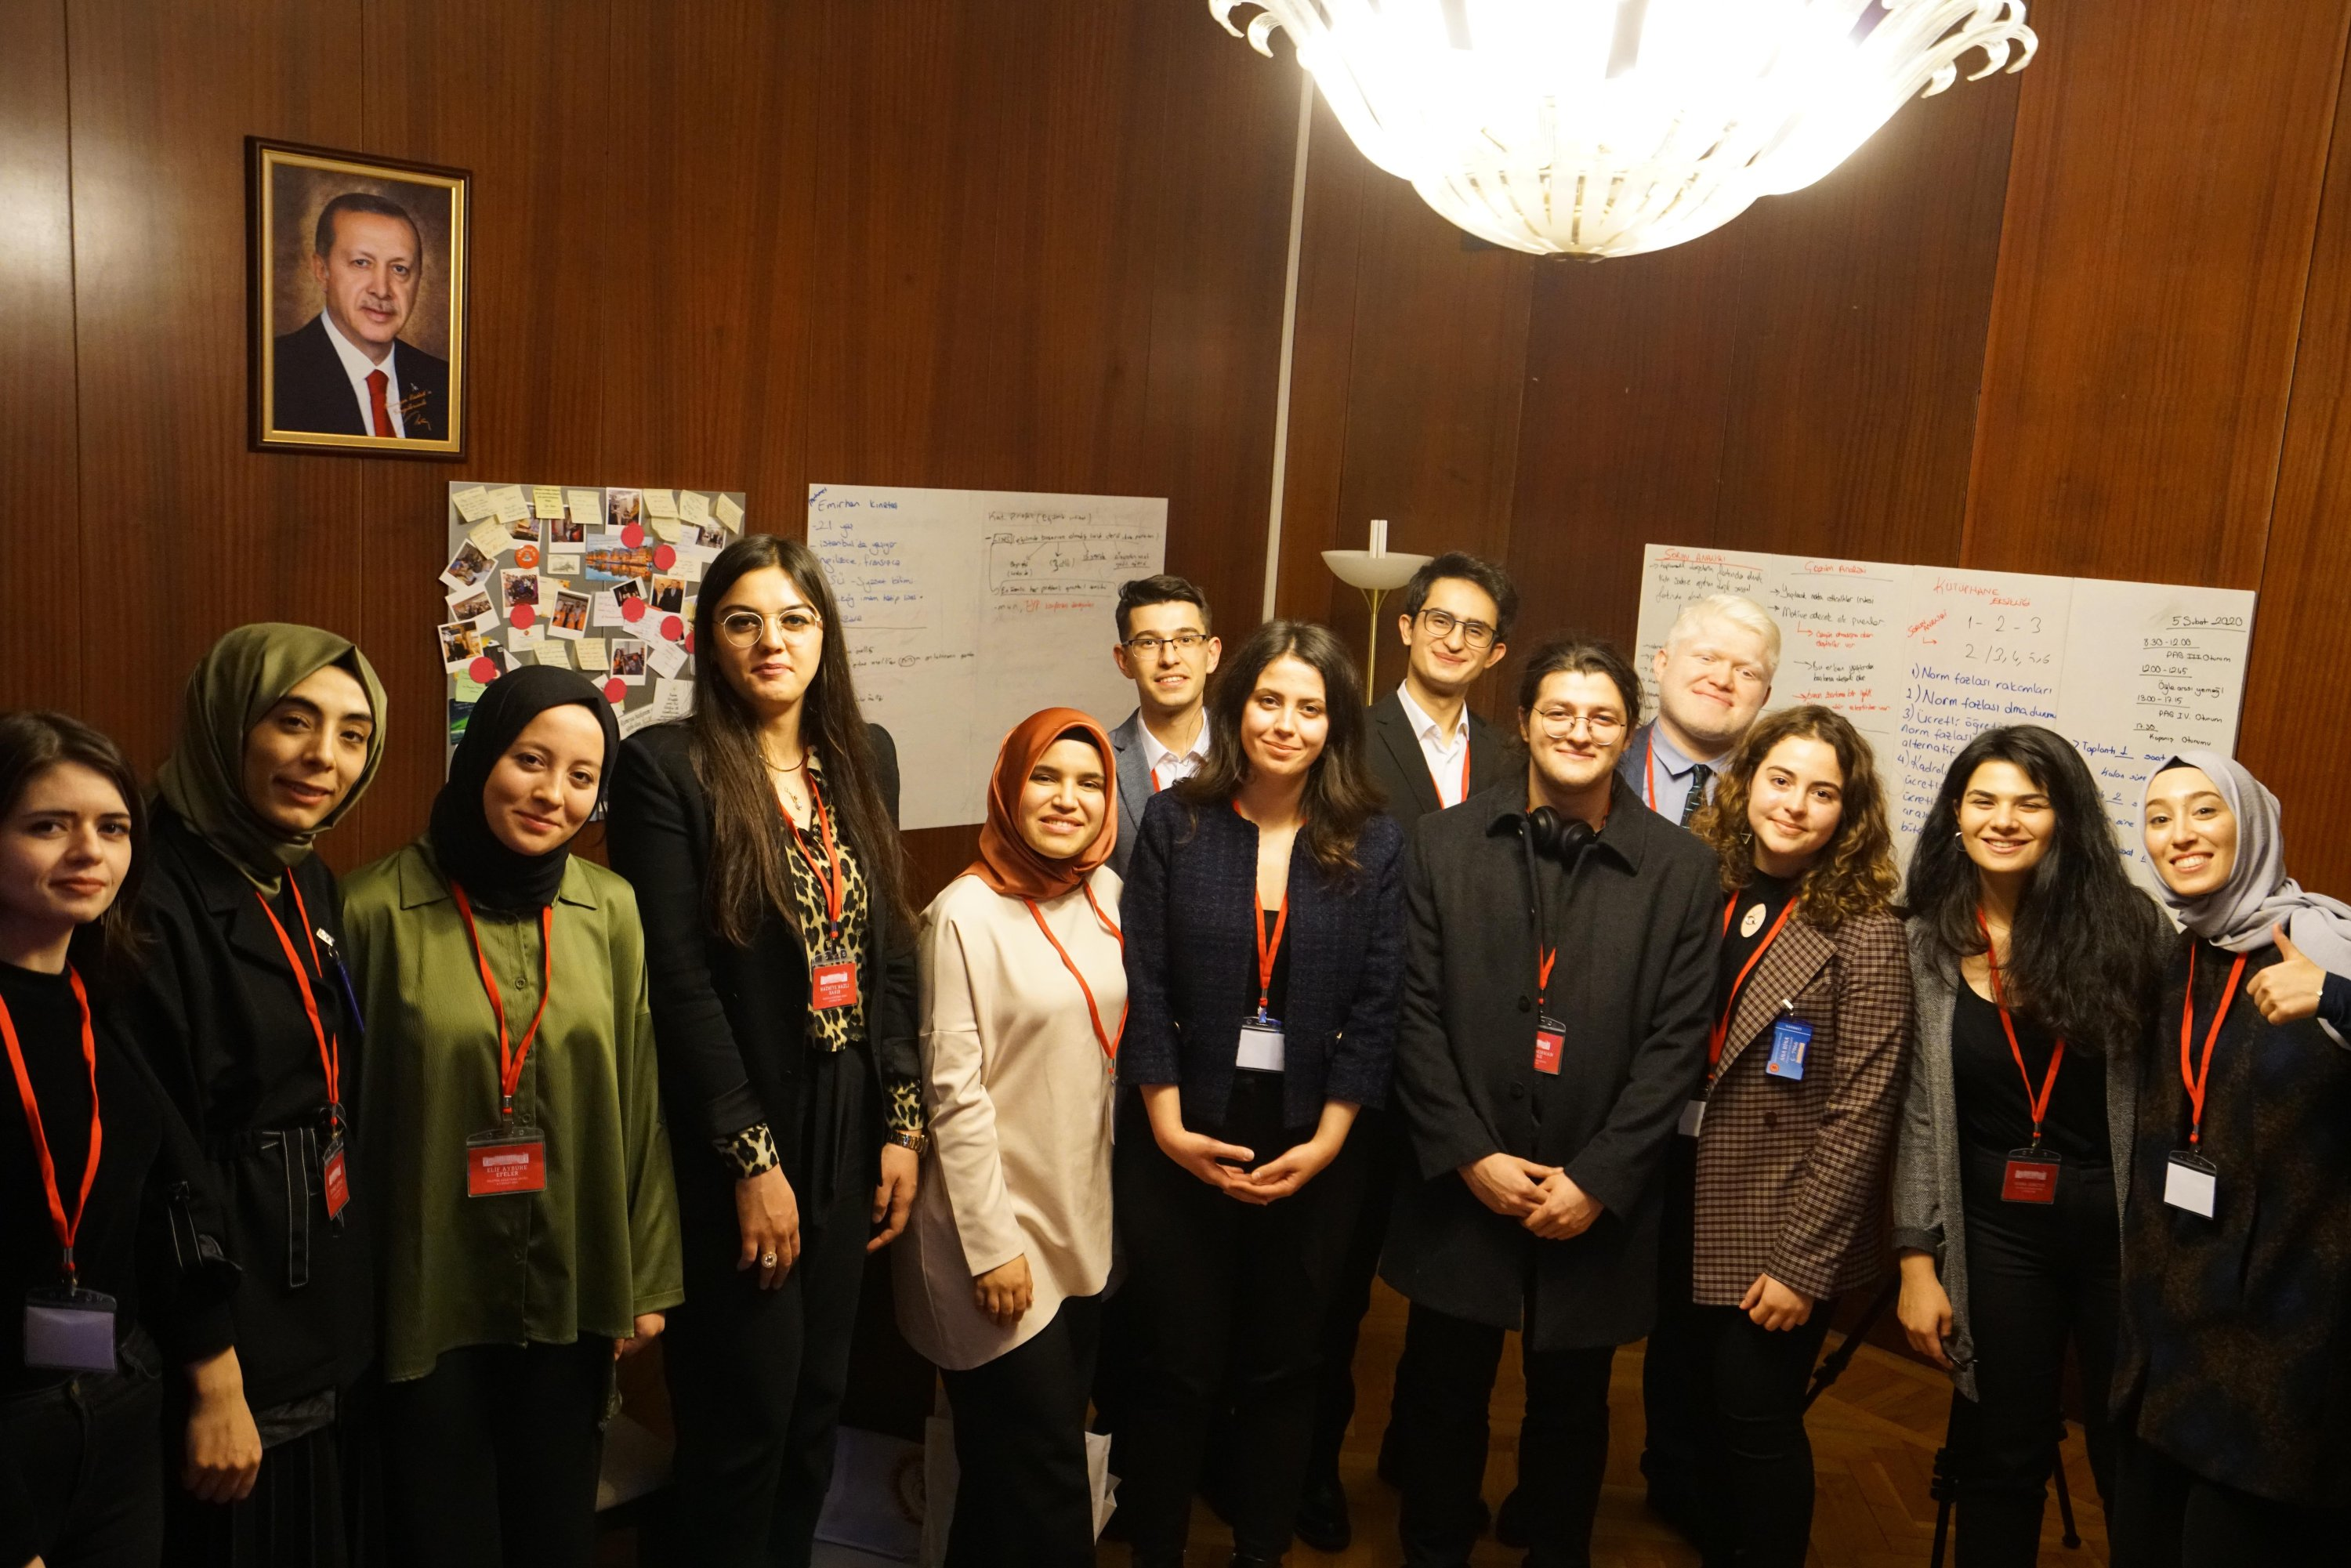 Policy Analysis Group (PAG) participants who attended the first series of workshops held before the COVID-19 pandemic pose for a group photo at the Turkish Parliament in February 2020. (Handout Photo)